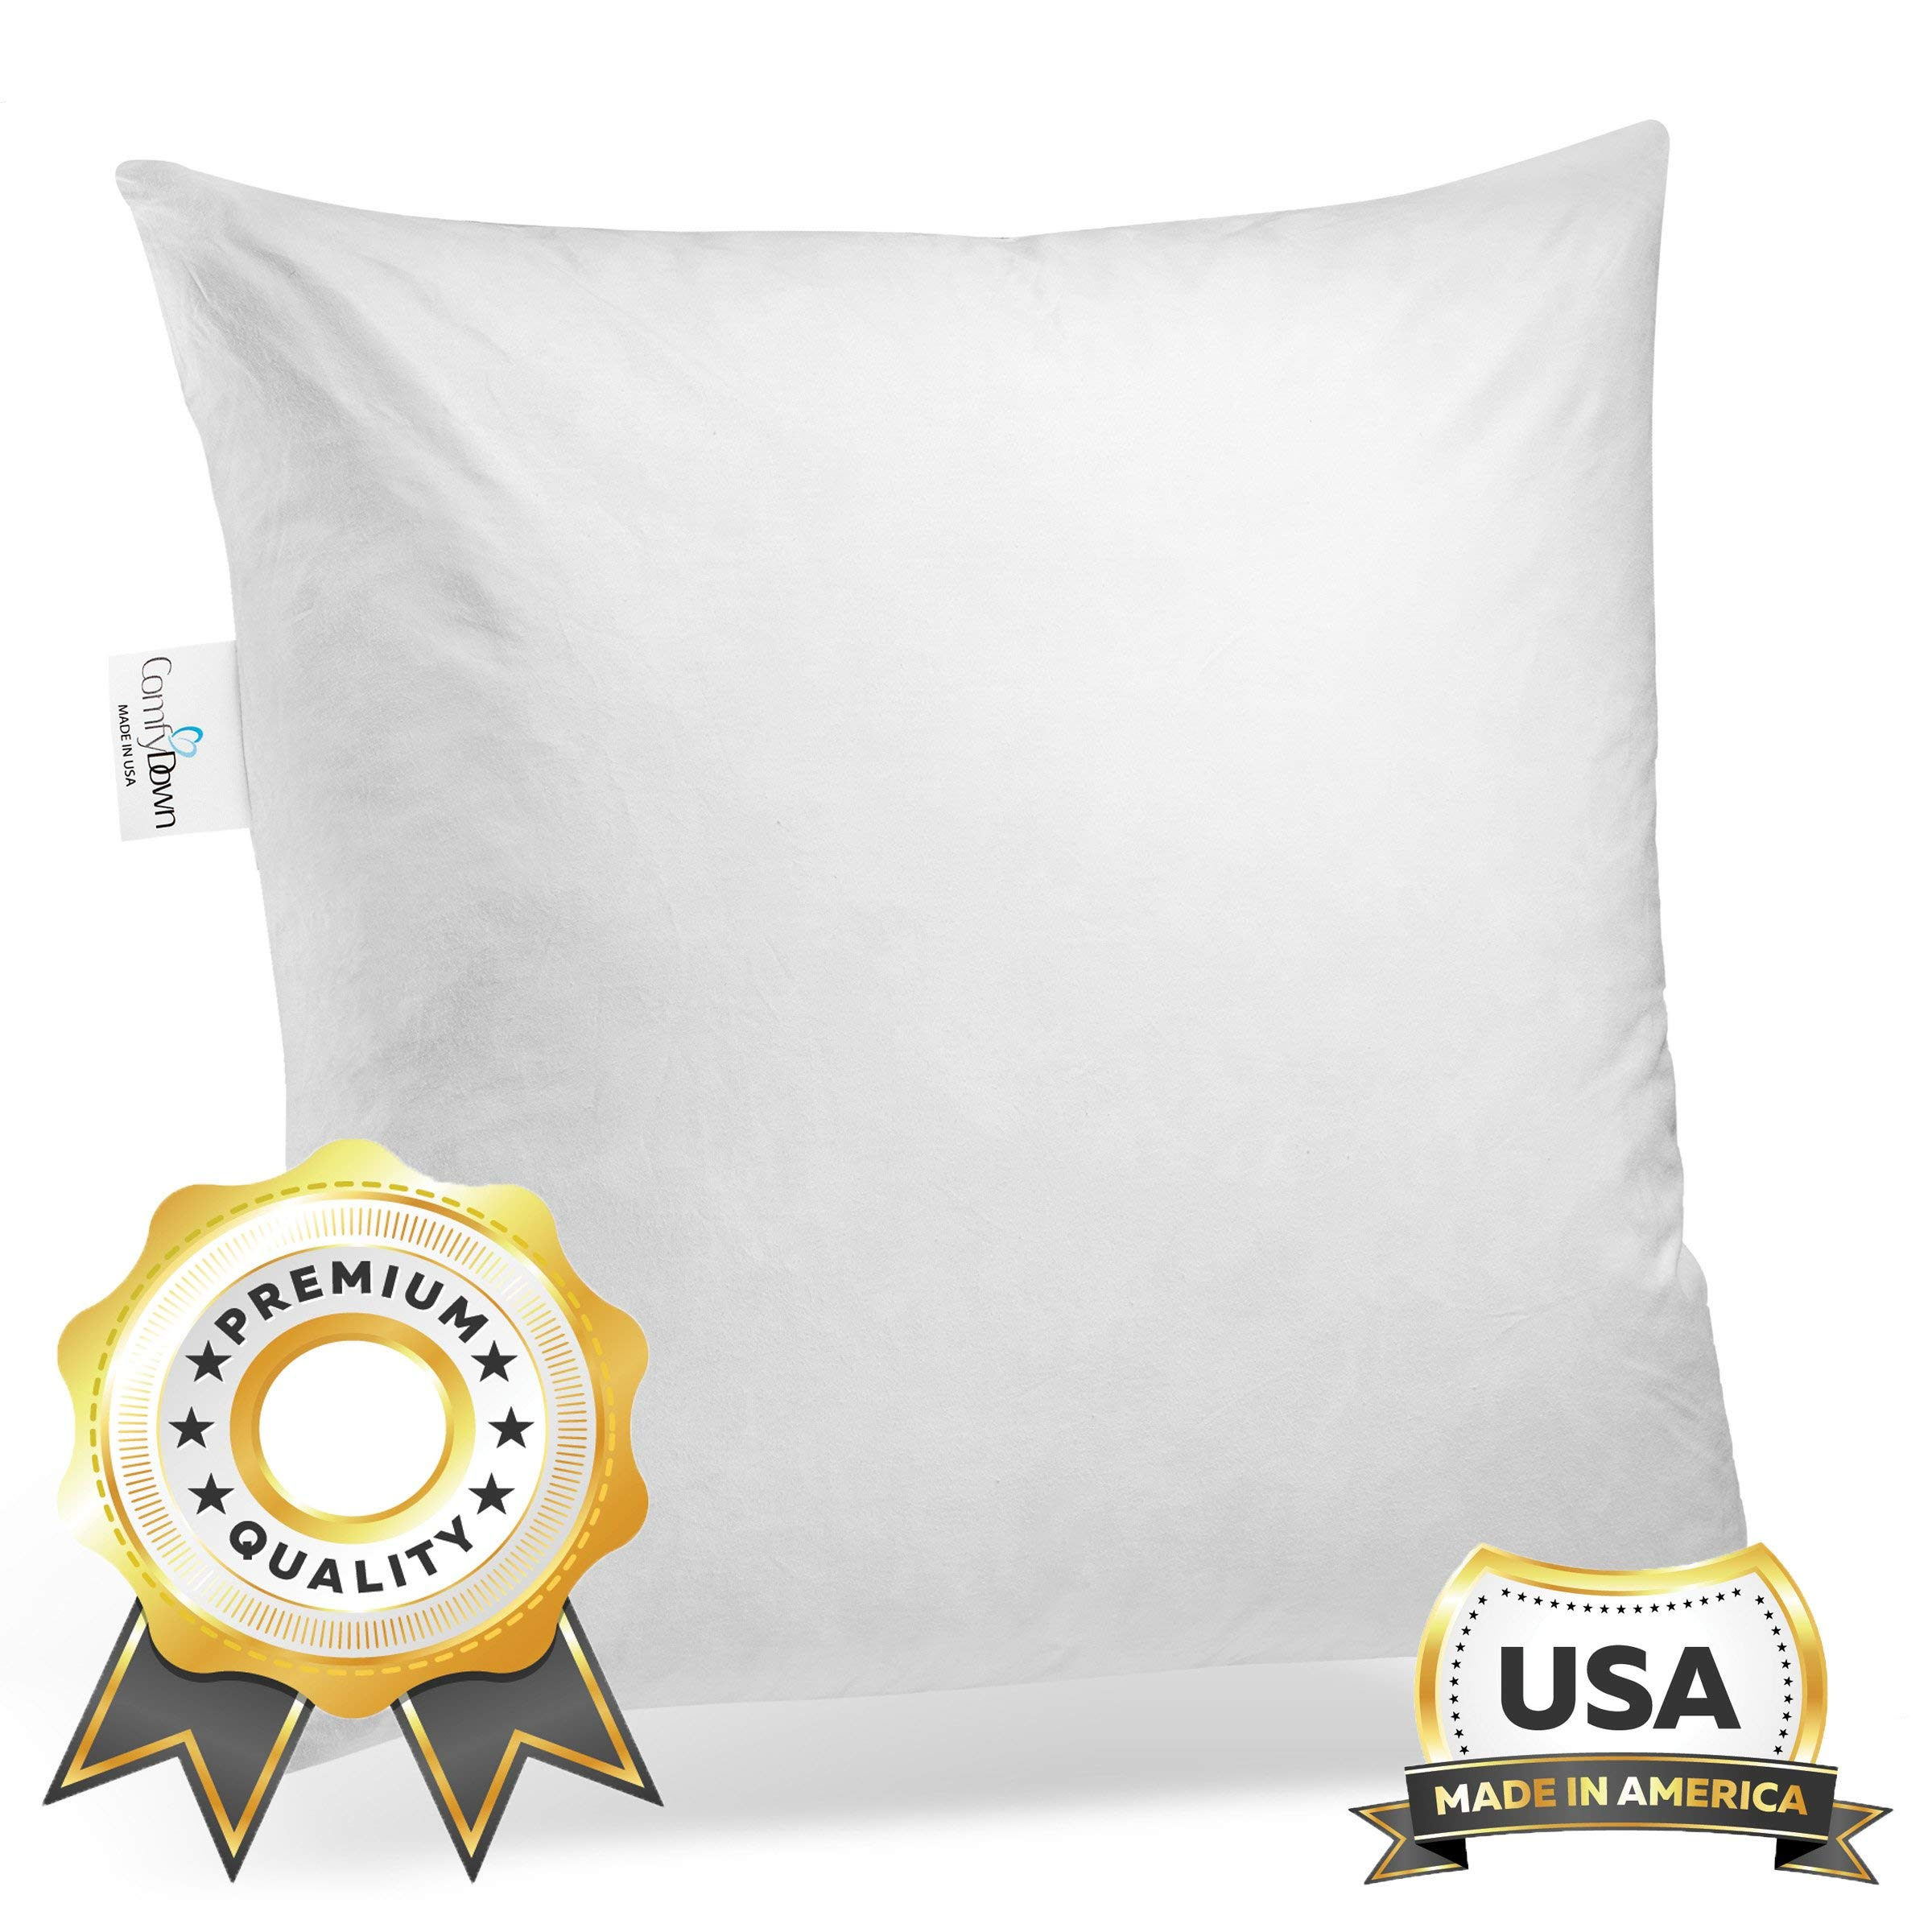 ComfyDown 95% Feather 5% Down, 31 X 31 Square Decorative Pillow Insert, Sham Stuffer - Made in USA